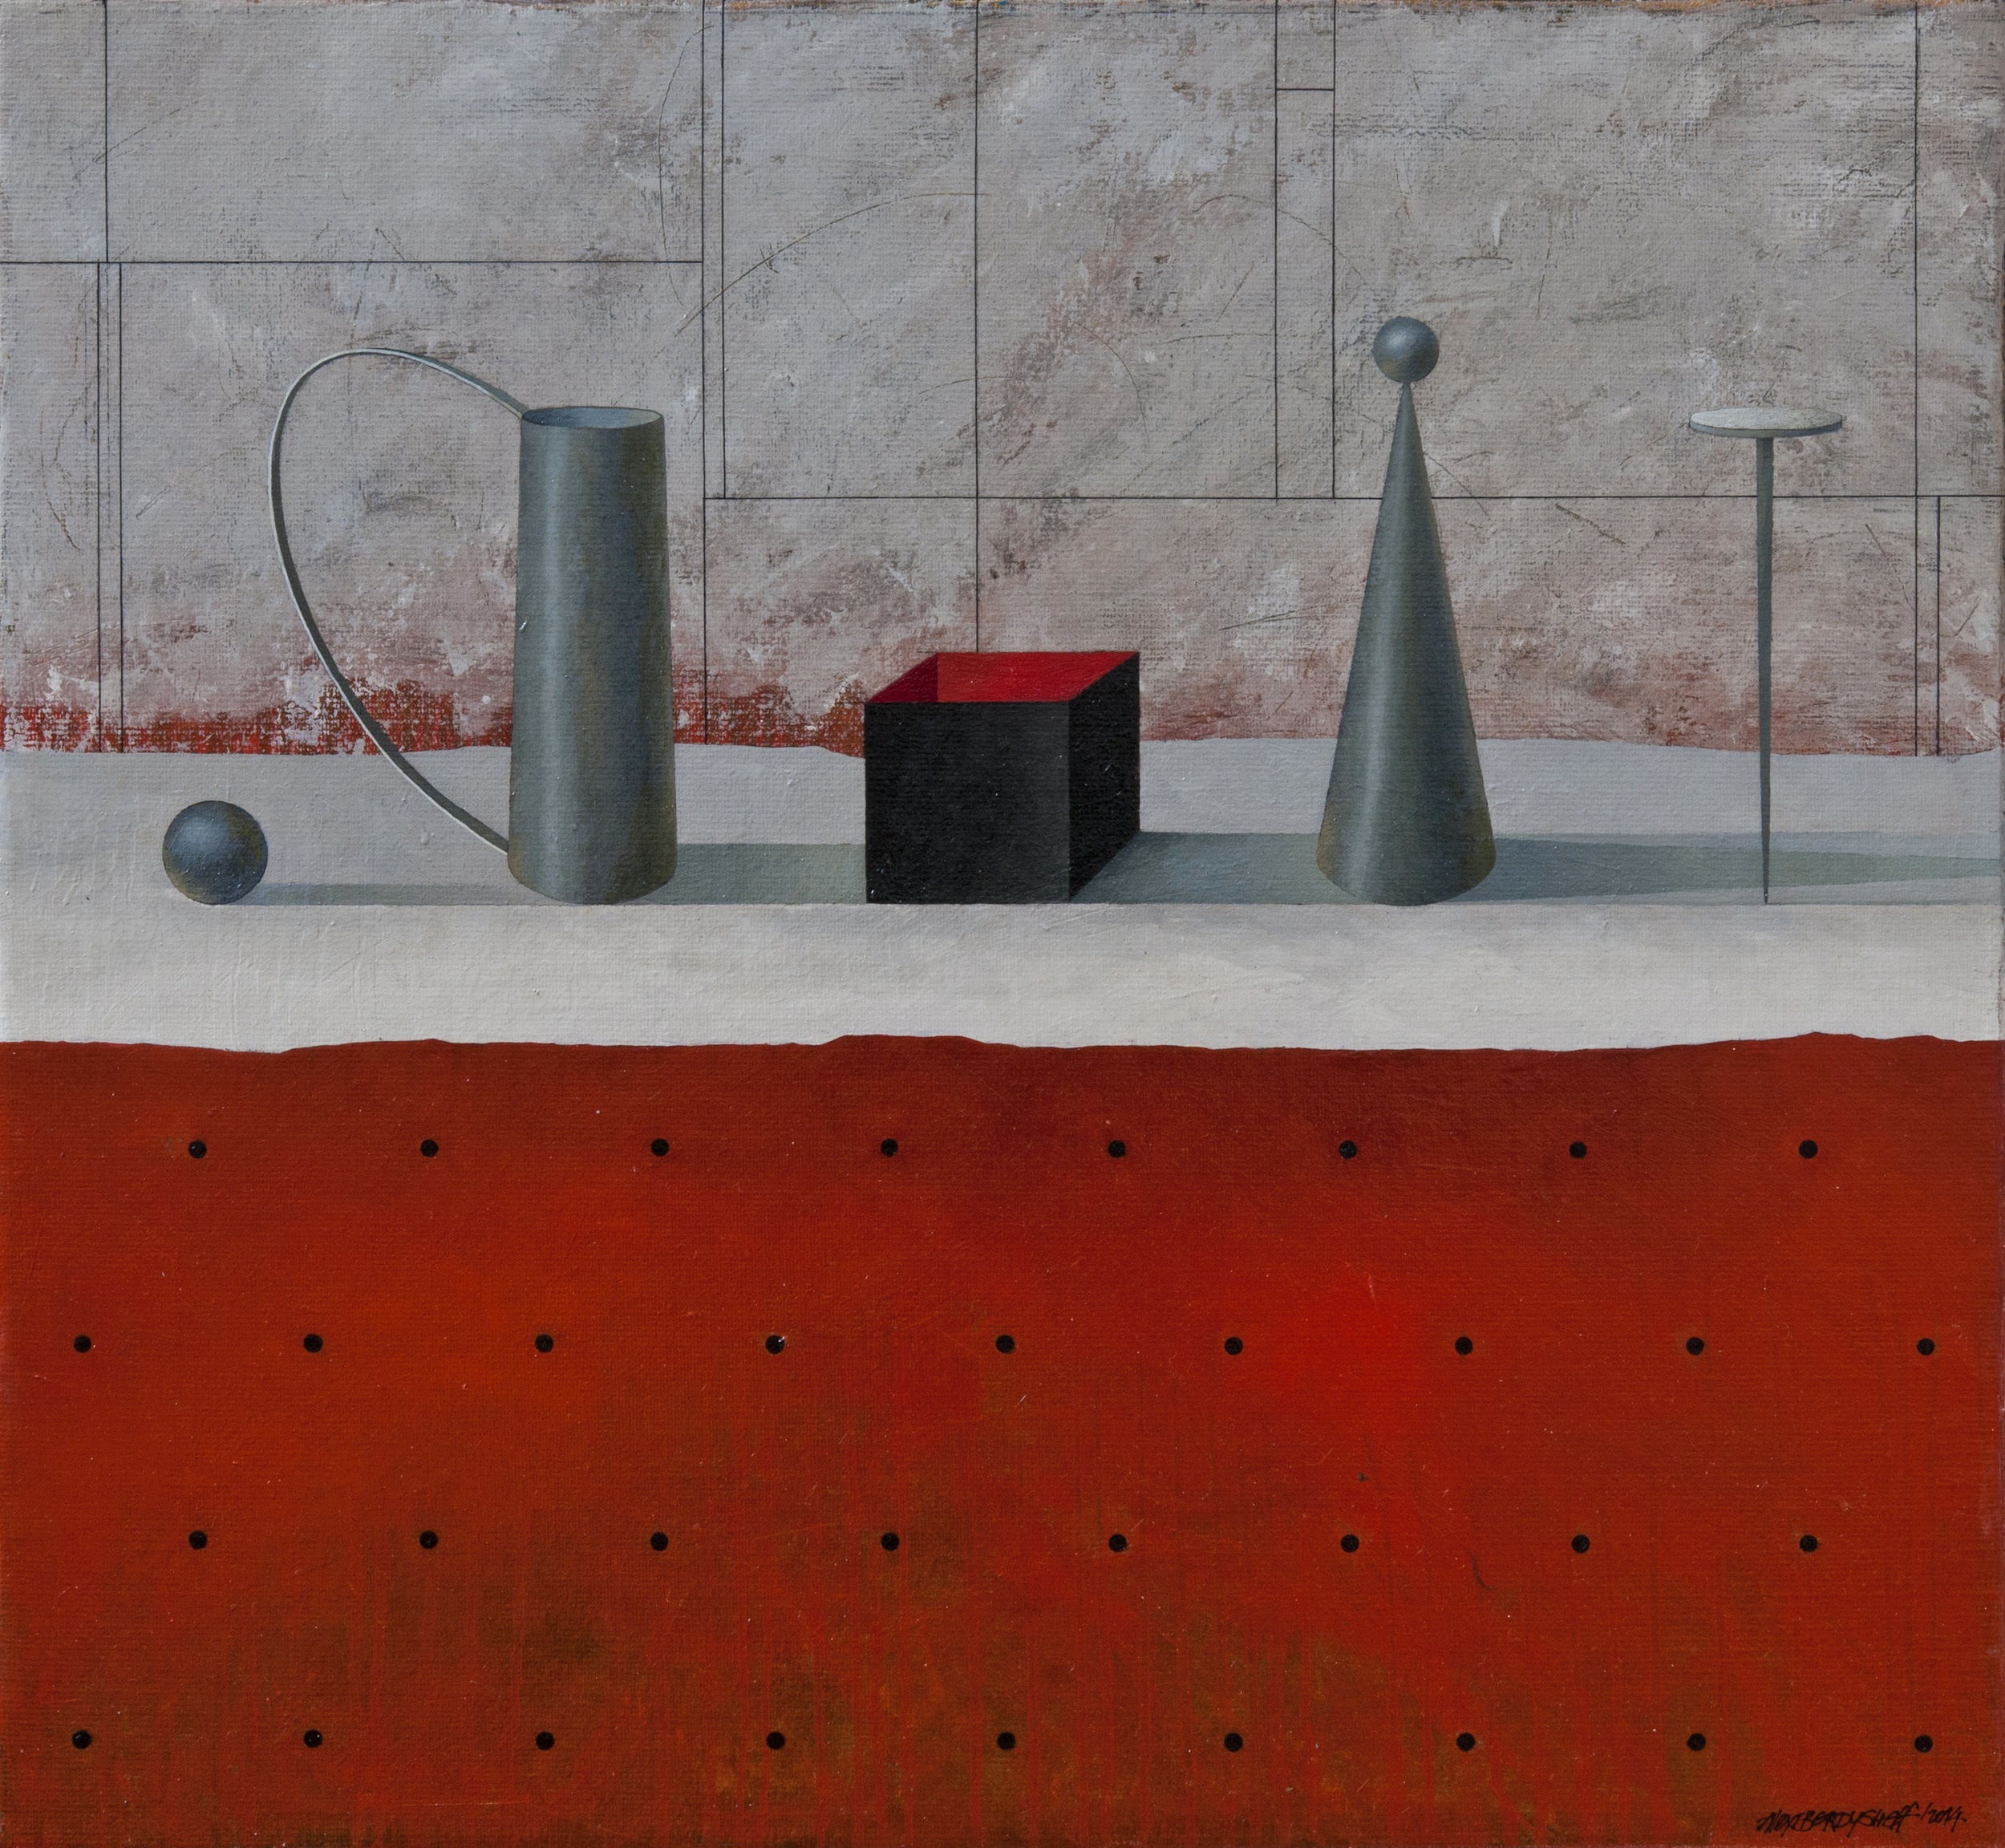 Still Life With a Black Box, oil on canvas, 72x78 cm, 2014